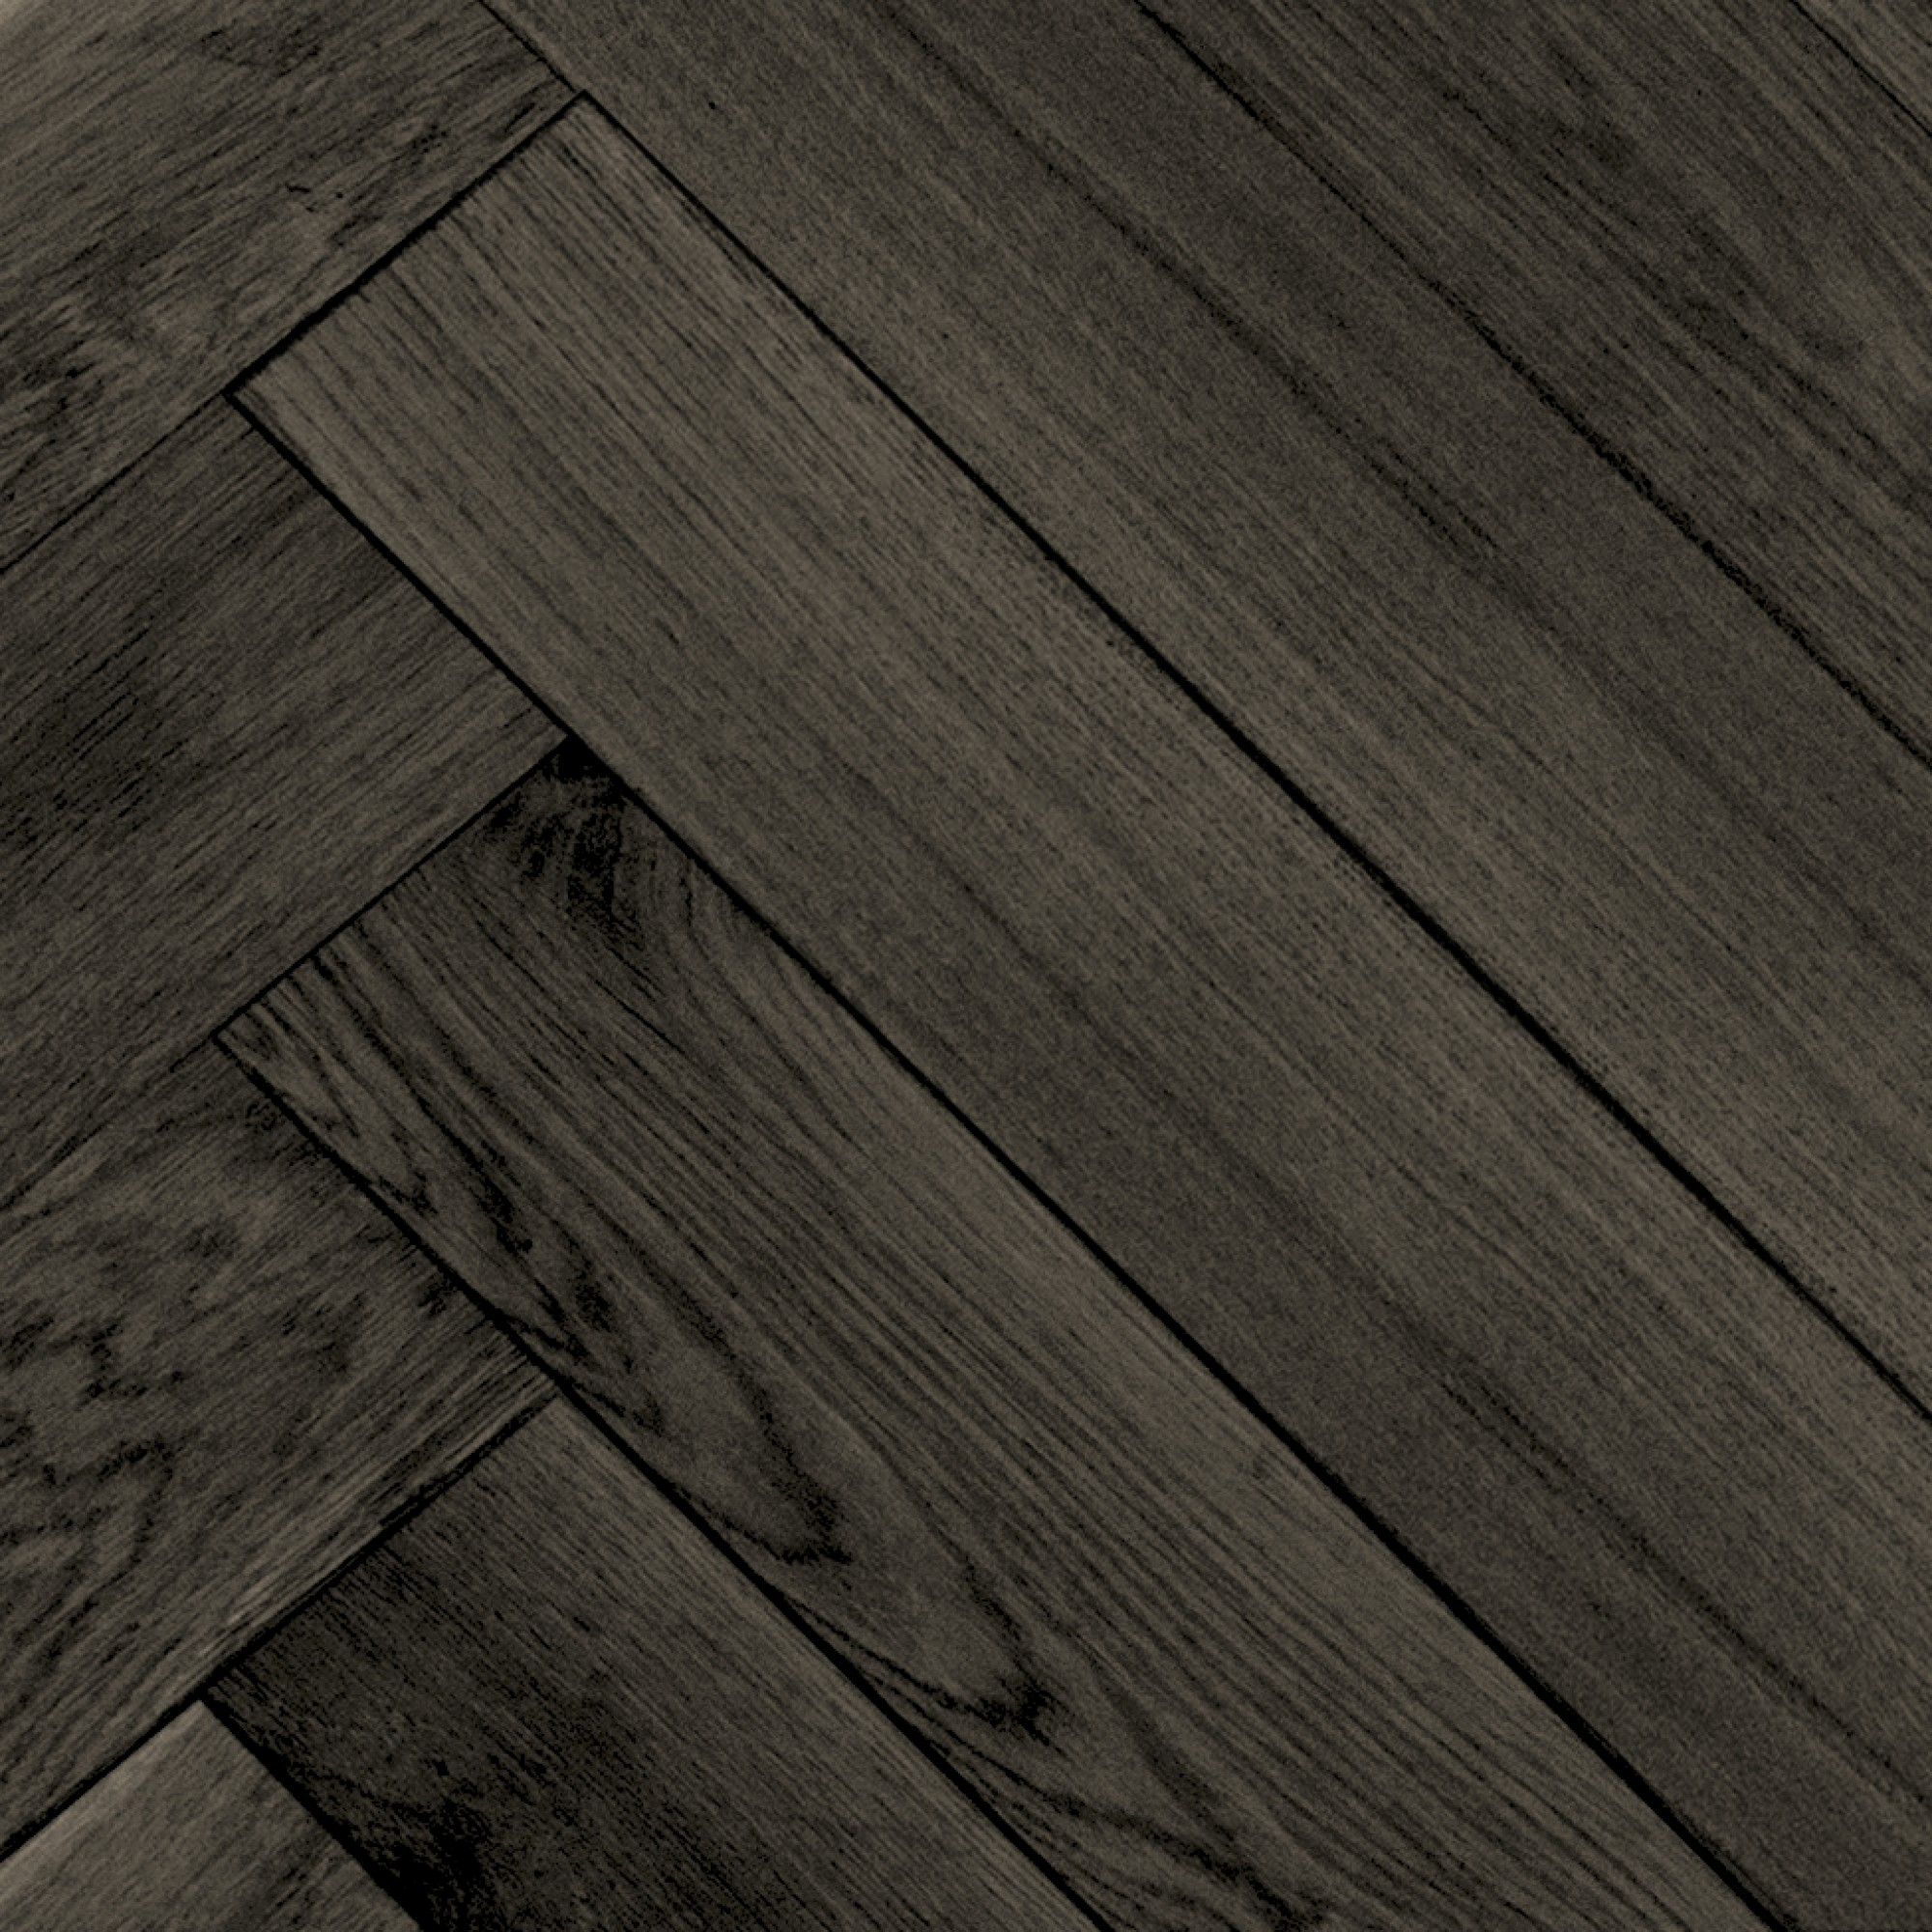 Herringbone White Oak Gotham Hand Scraped Vintage